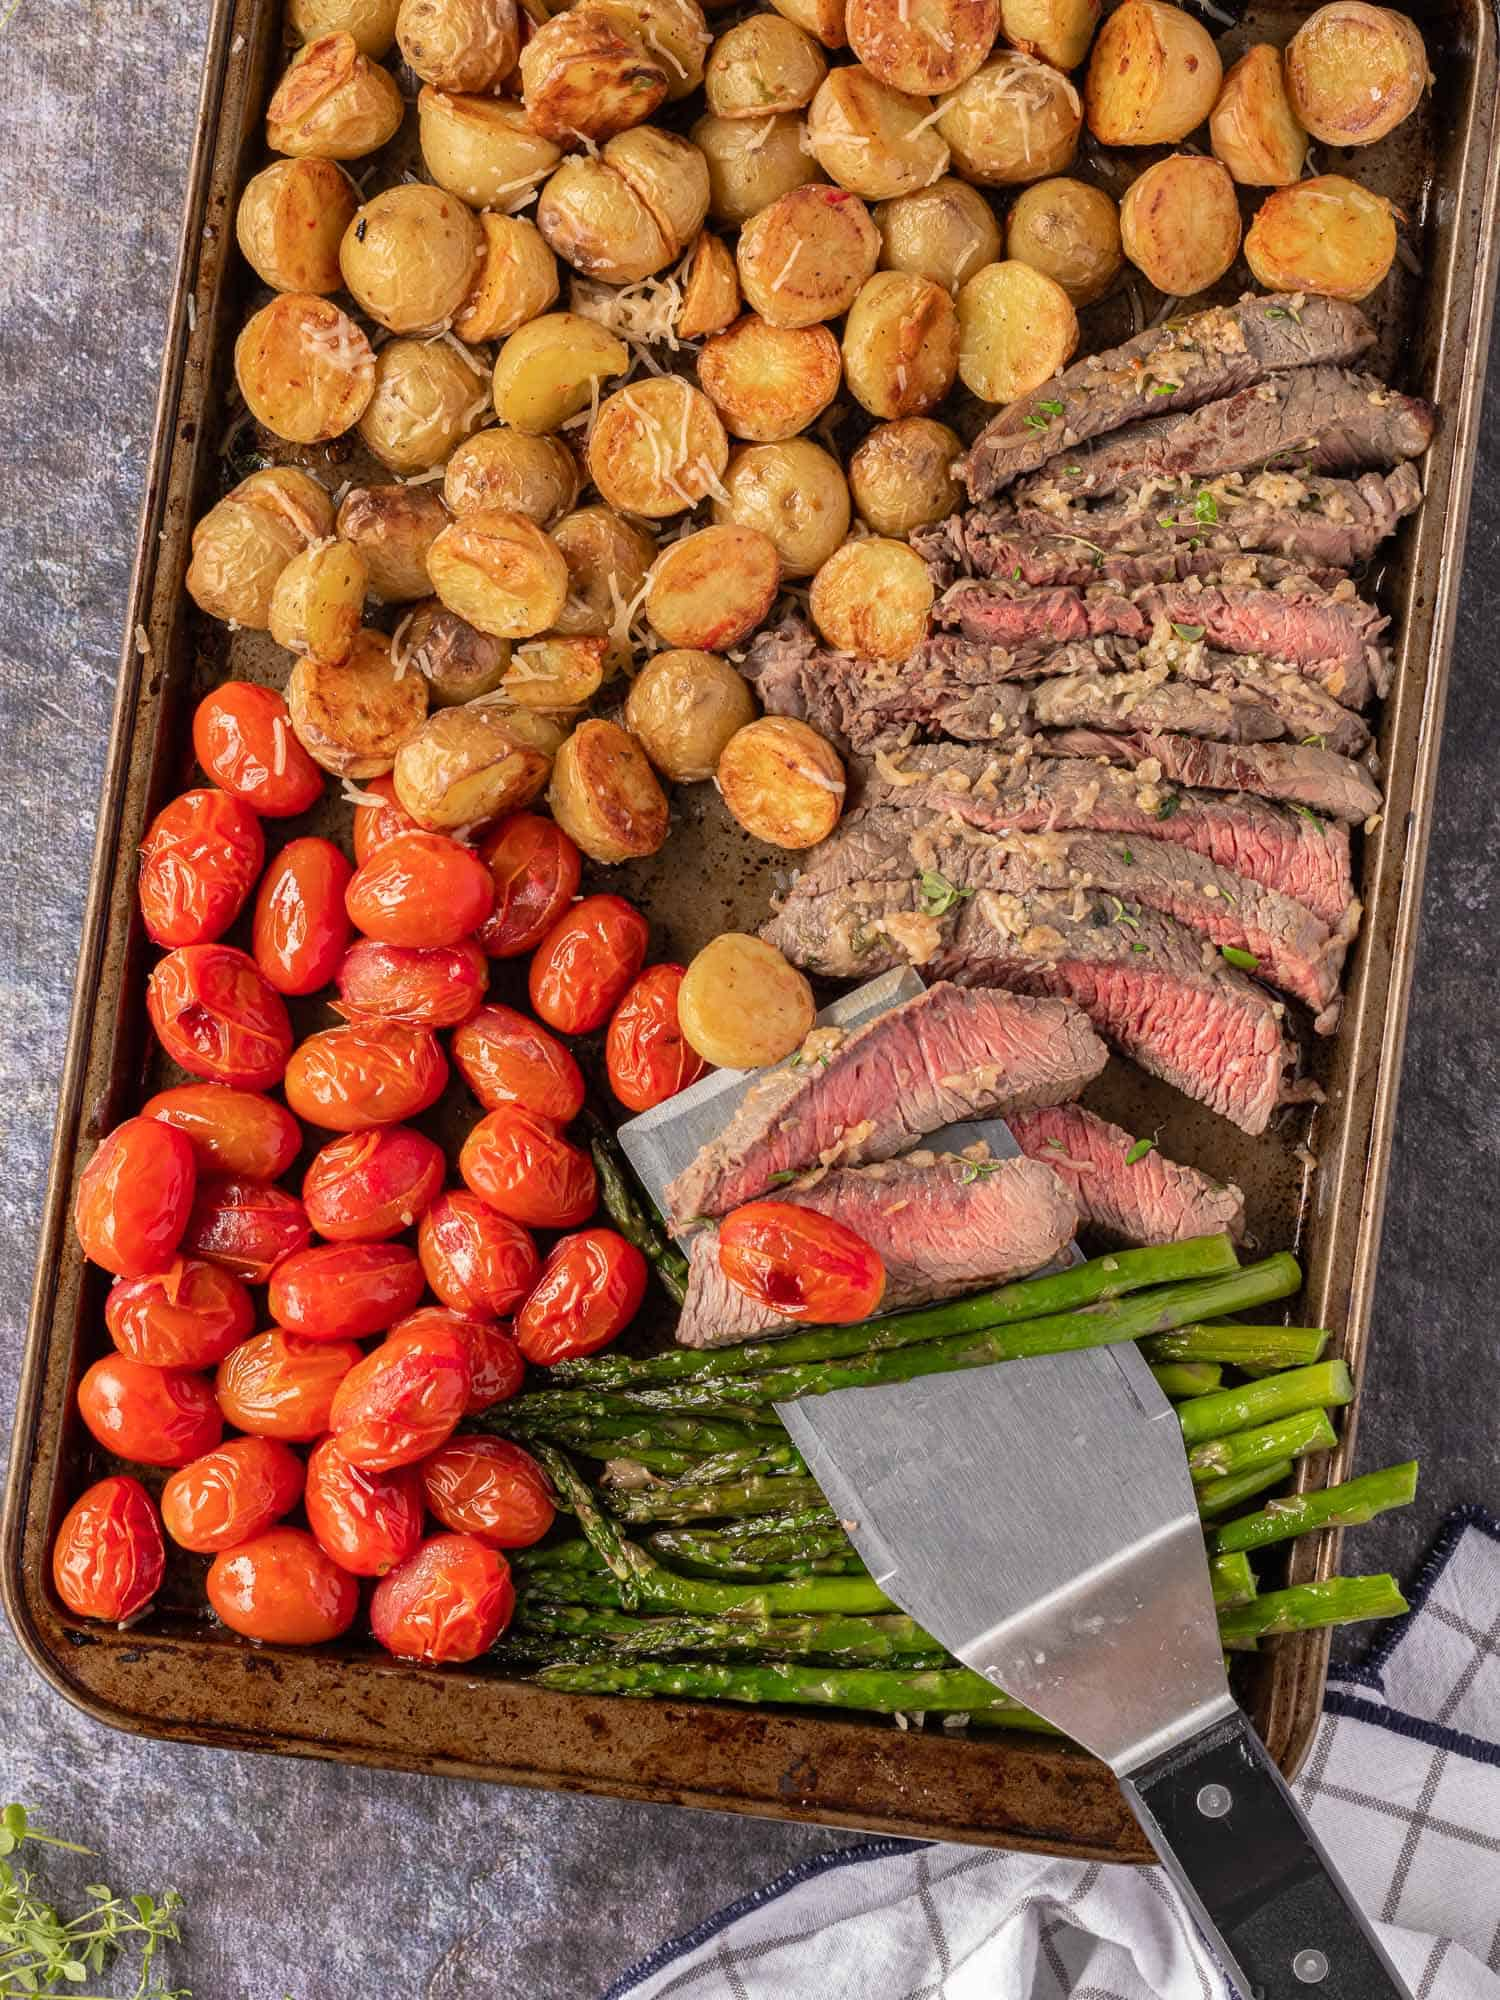 Steak on a spatula, surrounded by other food: tomatoes, asparagus, and potatoes.